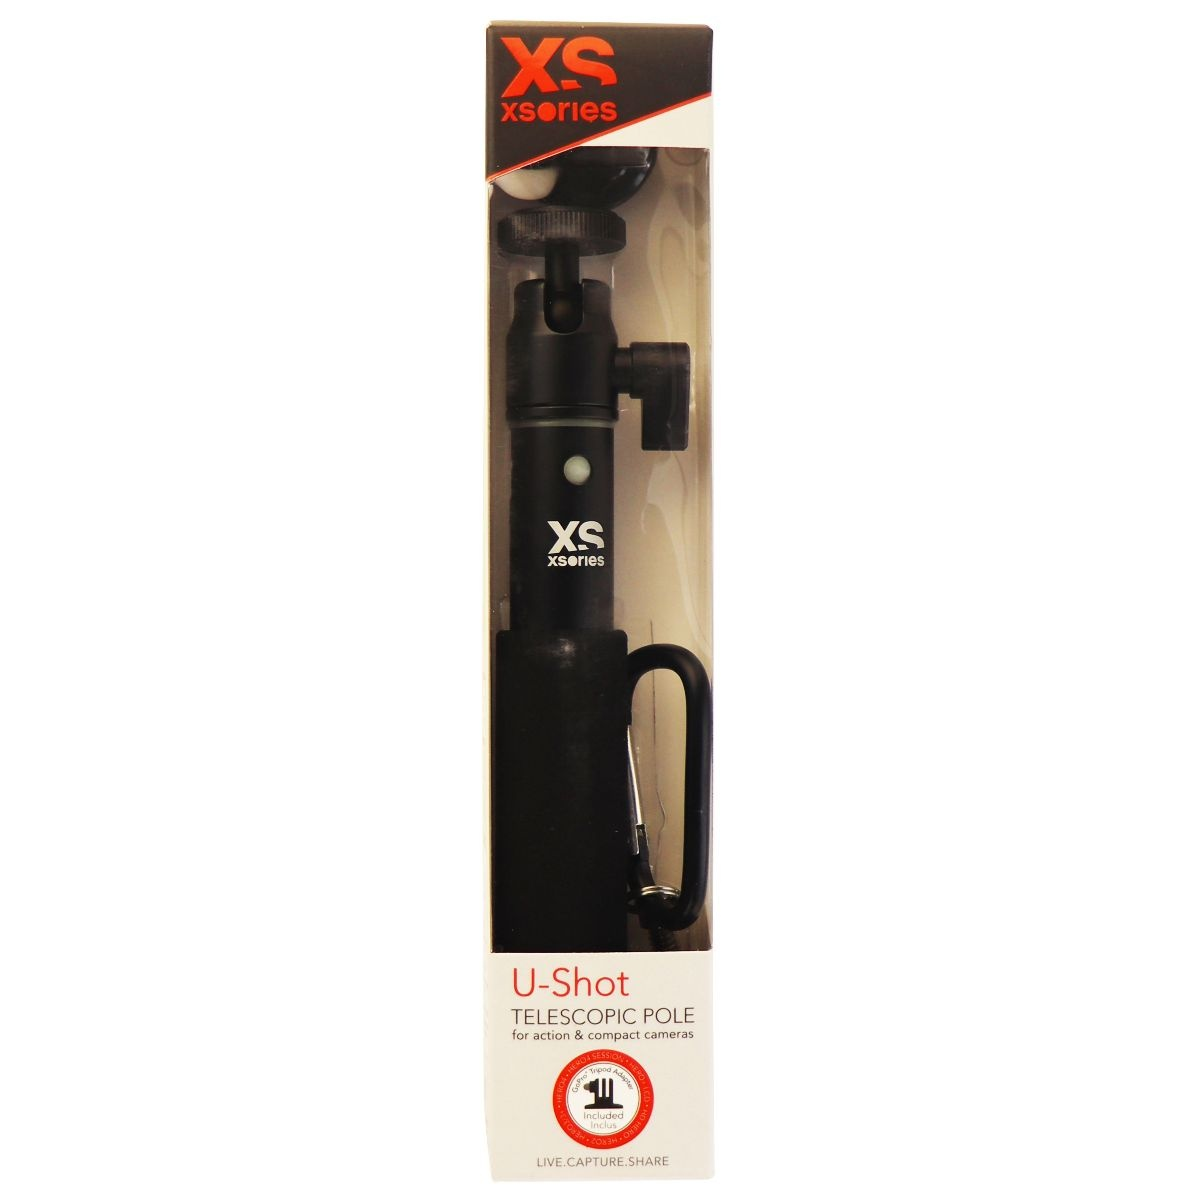 XSories U-Shot 19-in Telescopic Pole w/ 1/4-inch Mount and GoPro Adapter - Black